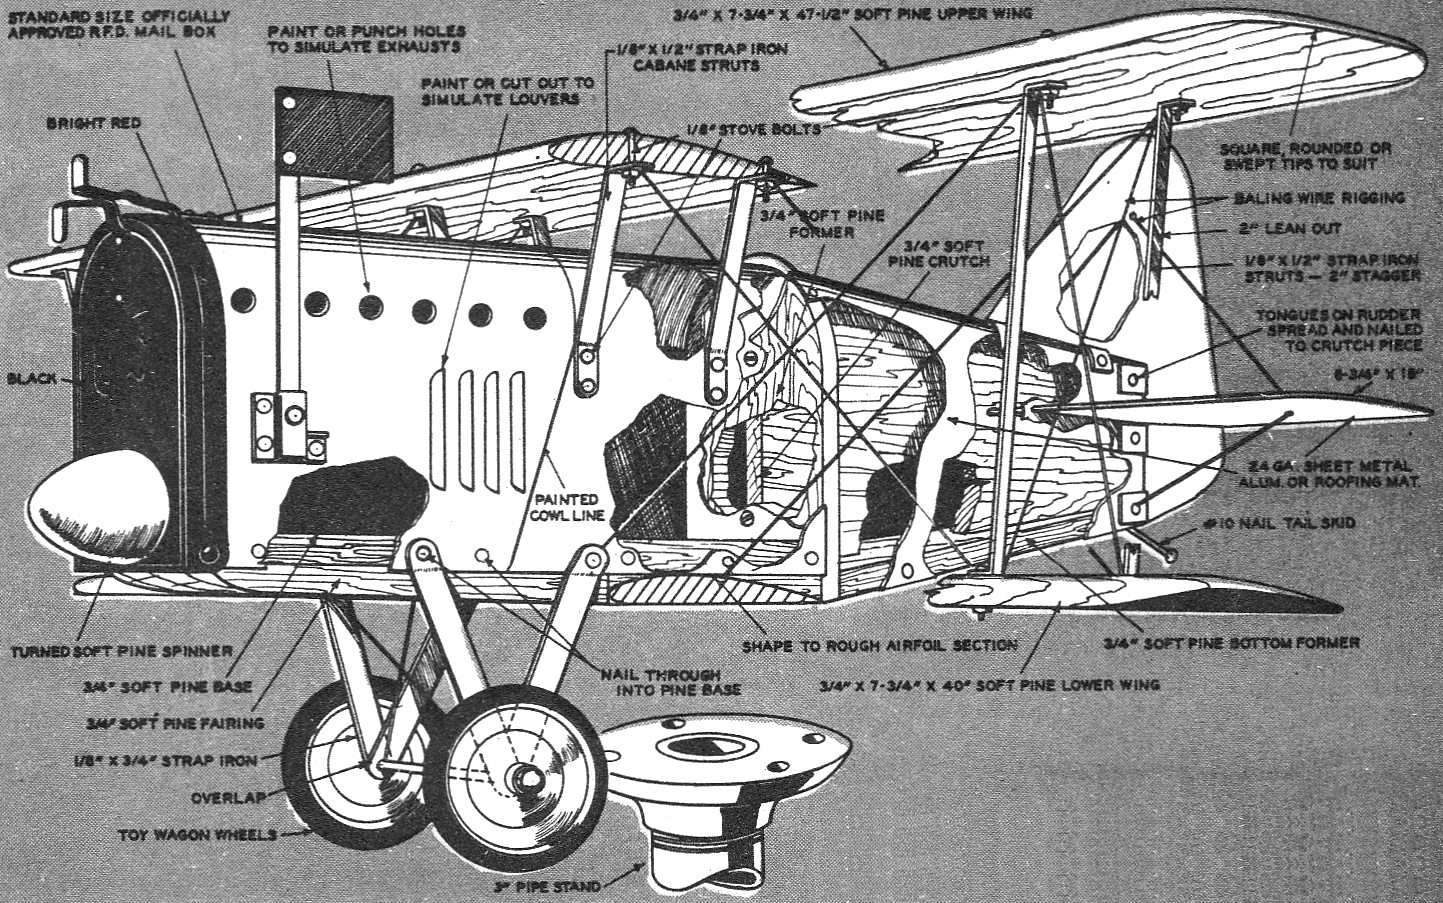 Antique Biplane Mailbox Assembly Drawing - Airplanes and Rockets